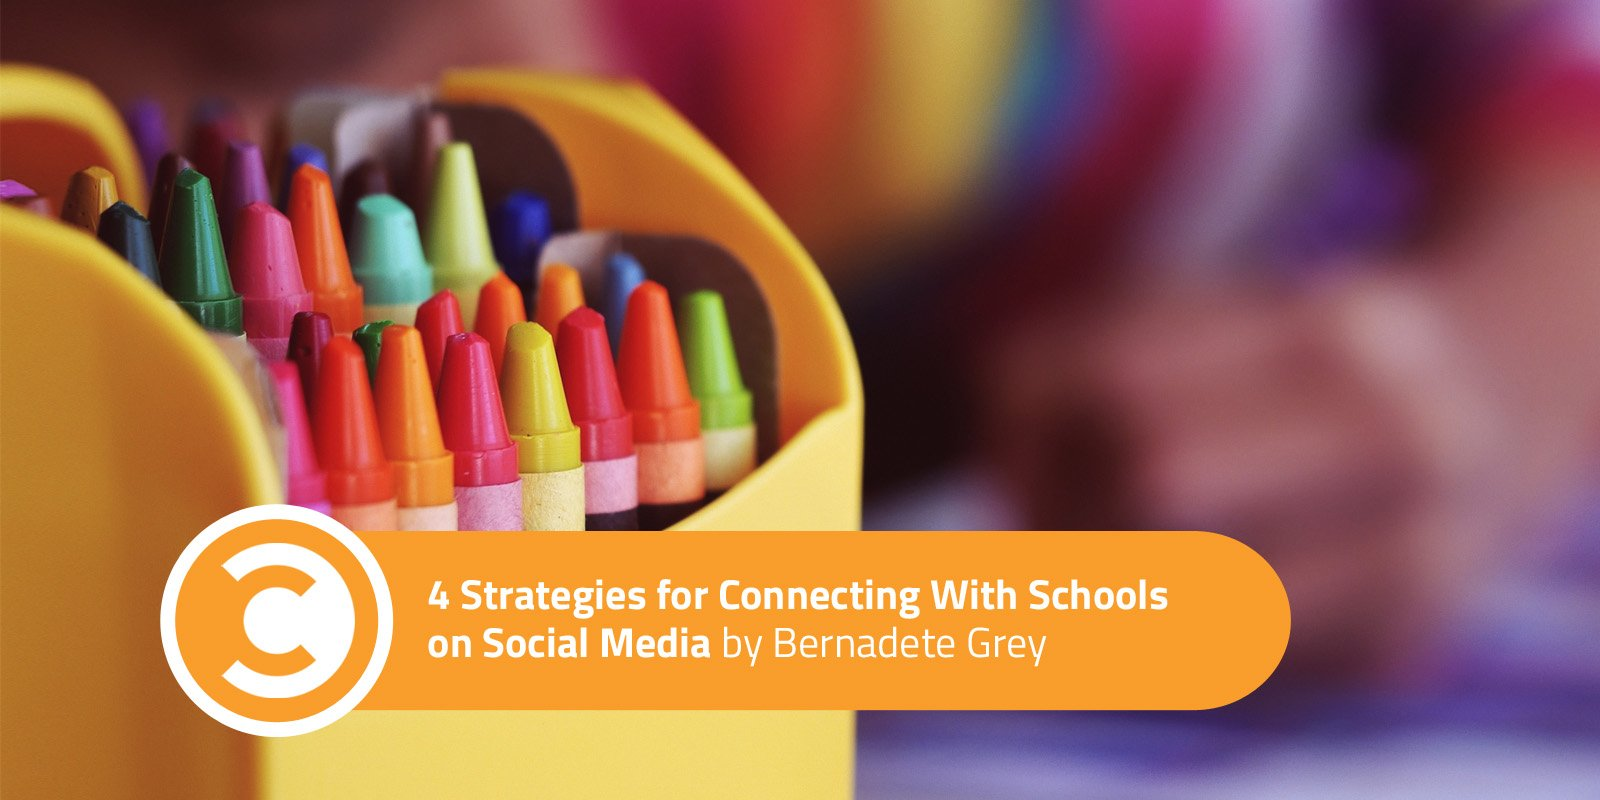 4 Strategies for Connecting With Schools on Social Media